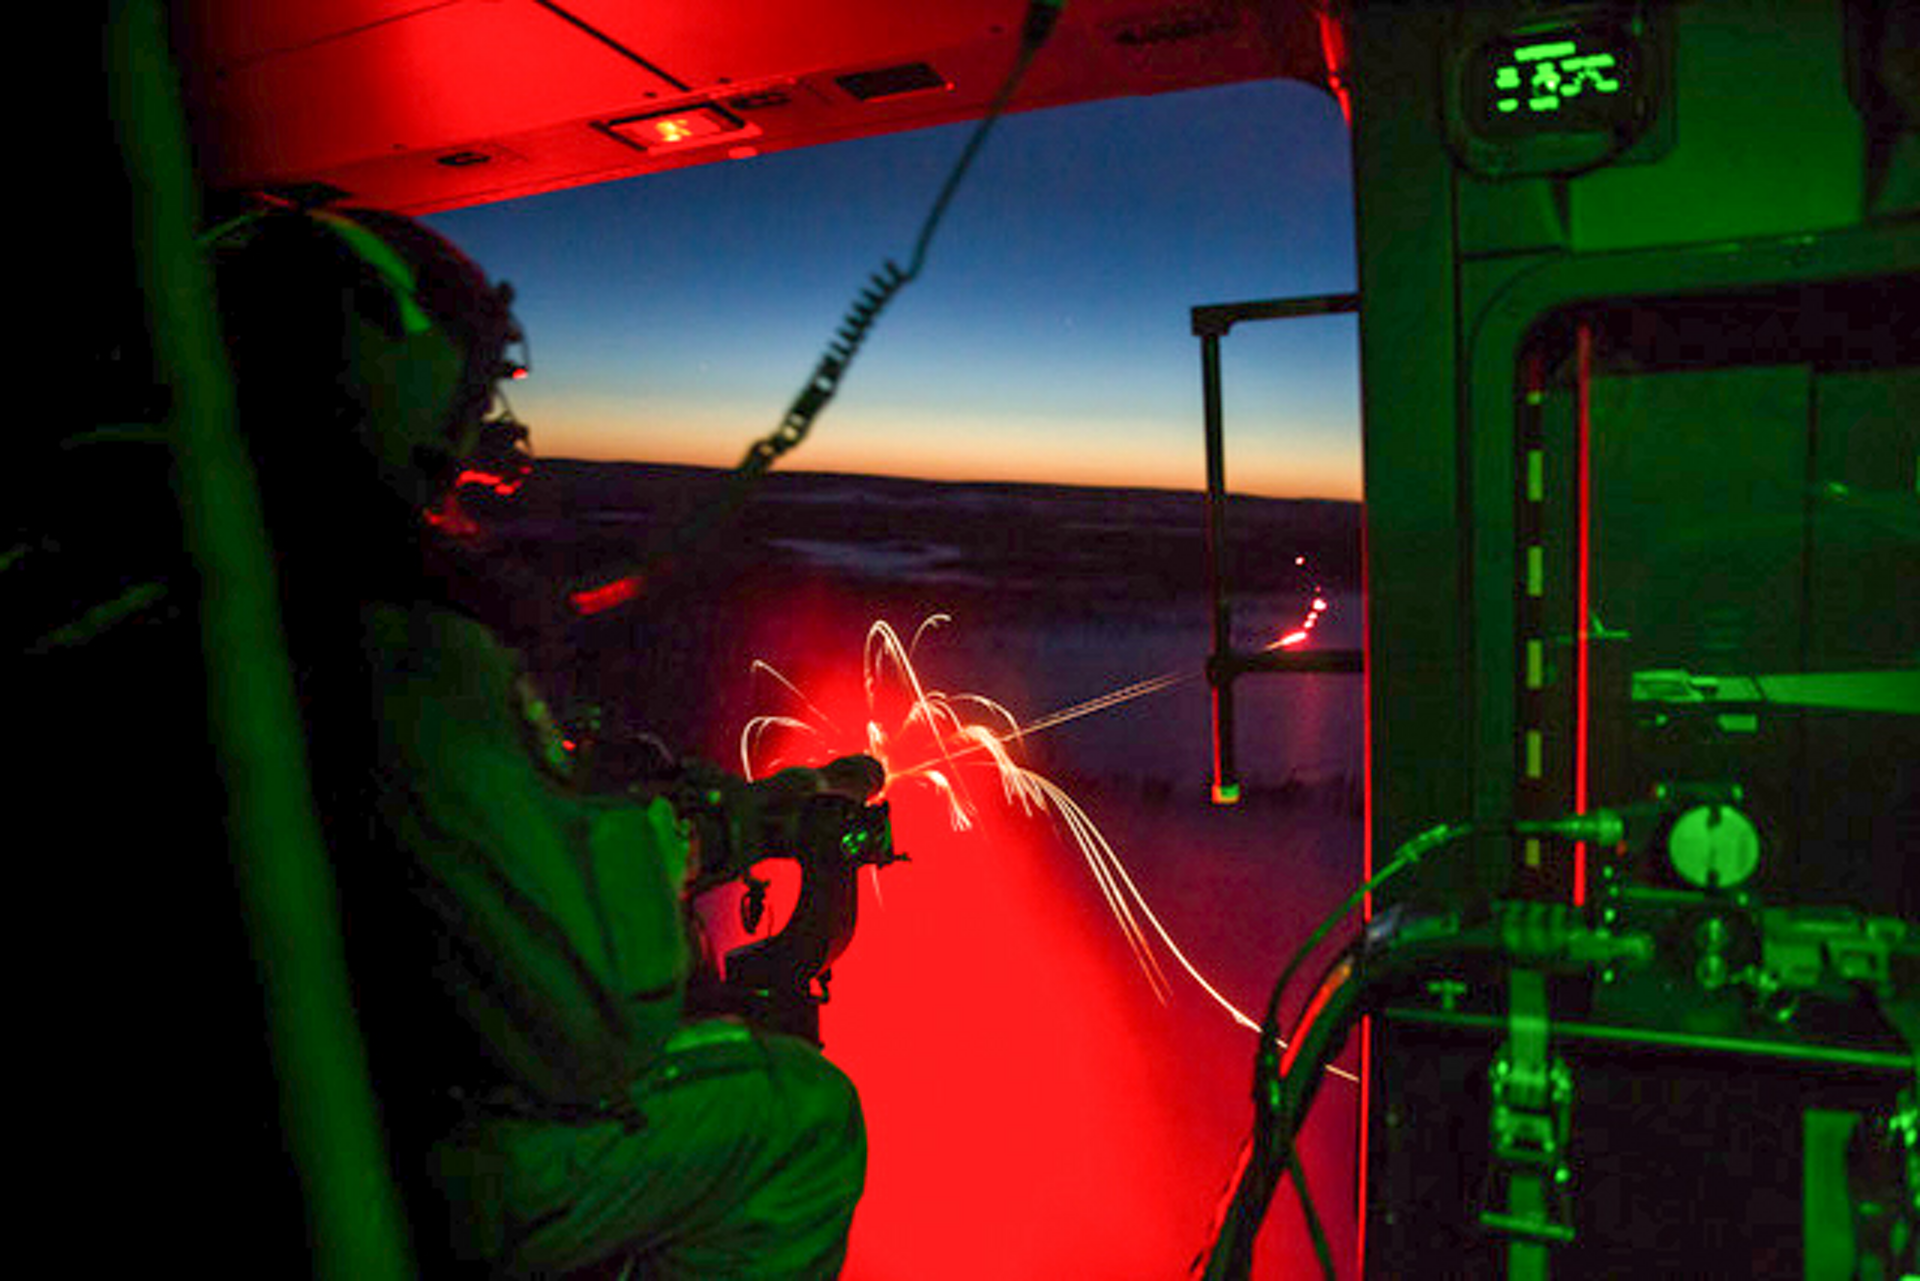 Inside view of Finnish Defence Forces NH90 during live firing exercise.